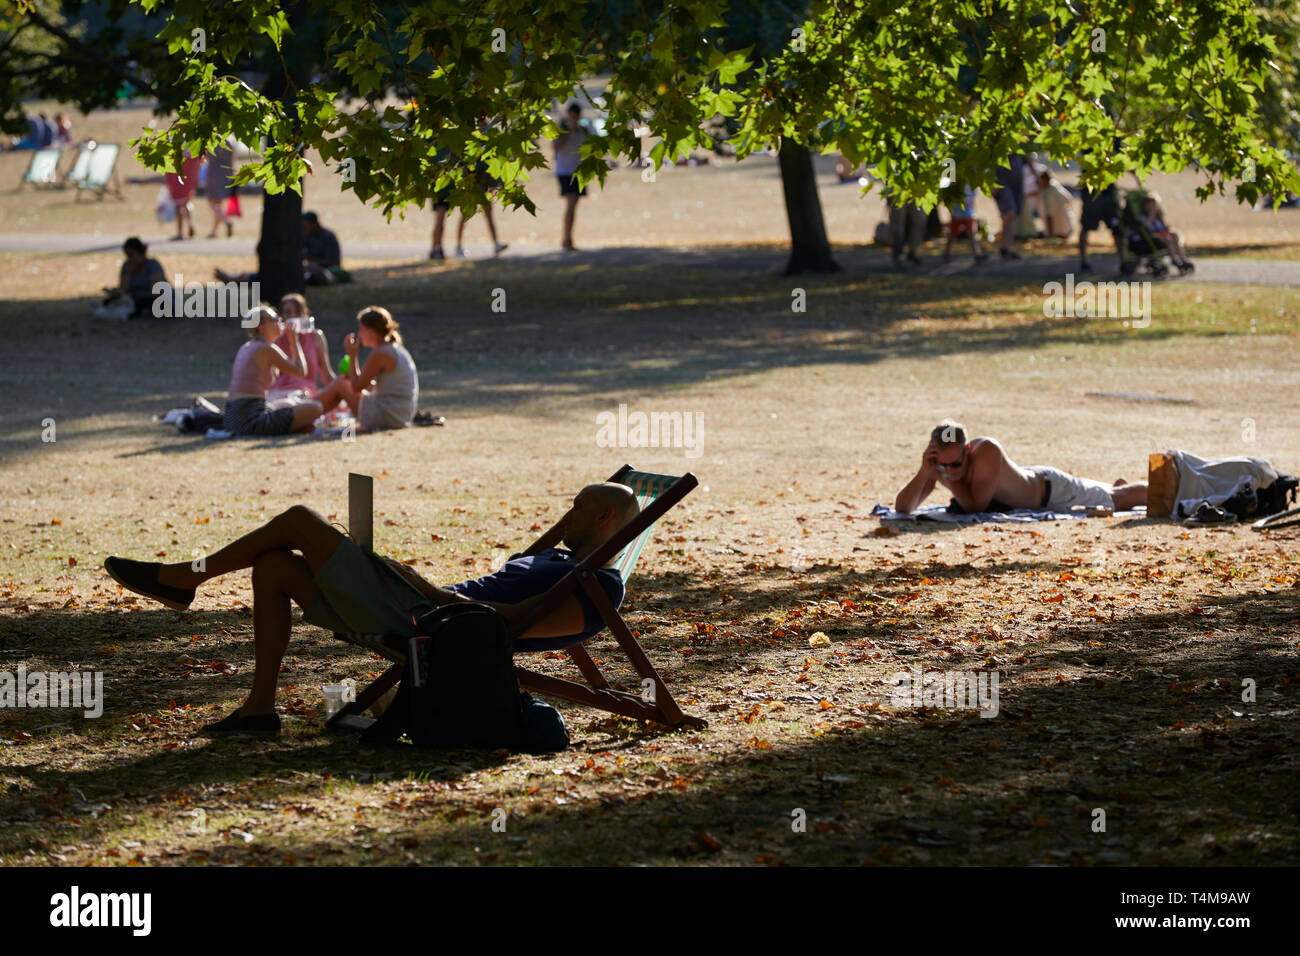 People relaxing in the sun, St James's Park, London, England, Great Britain Stock Photo